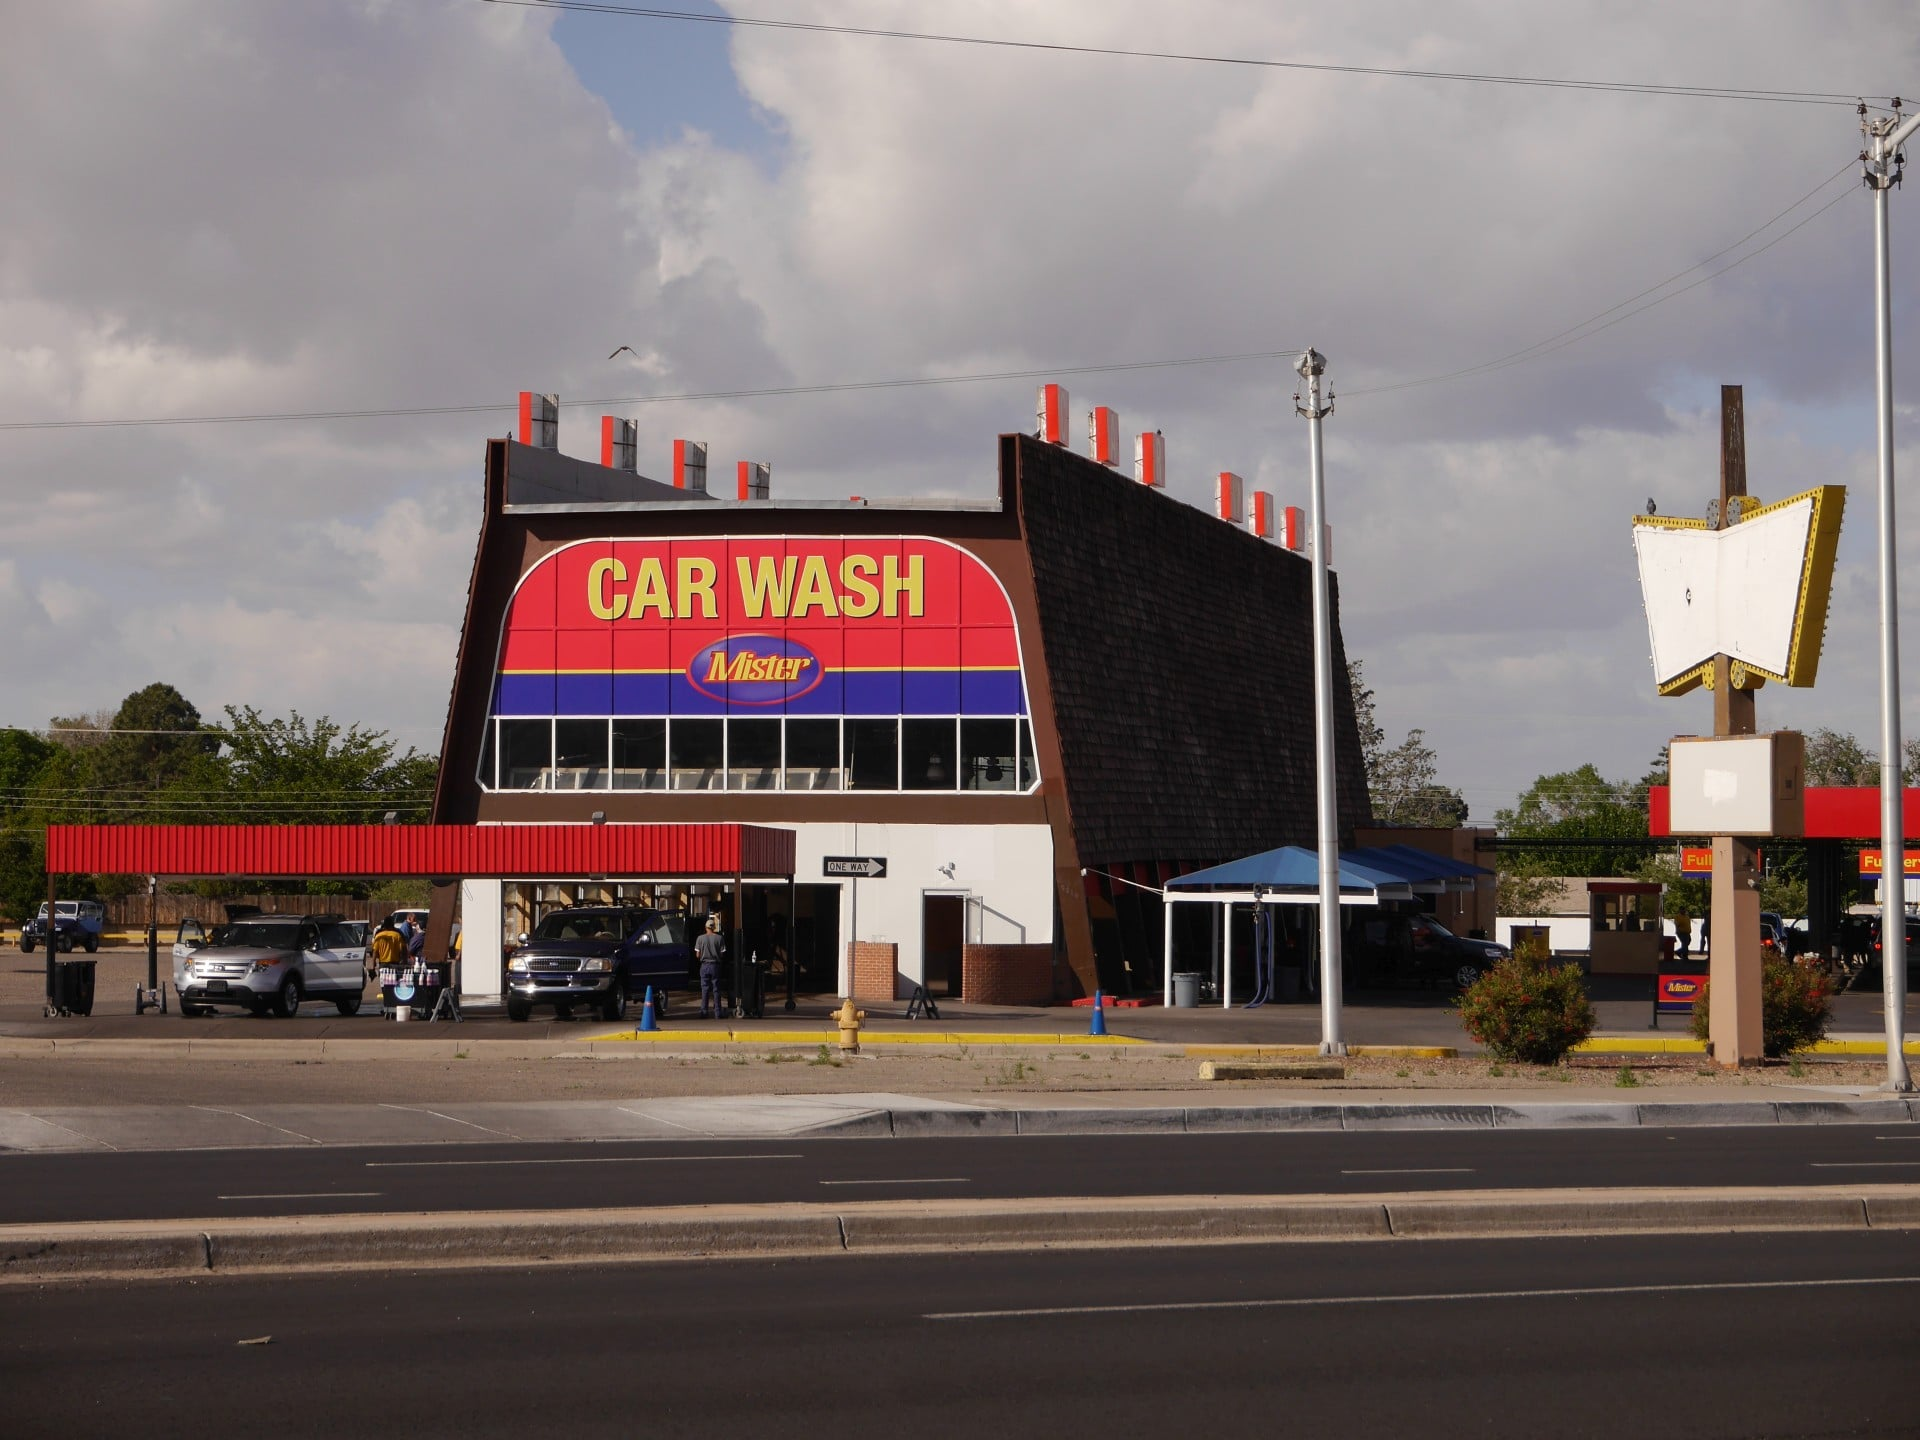 Car wash on busy street